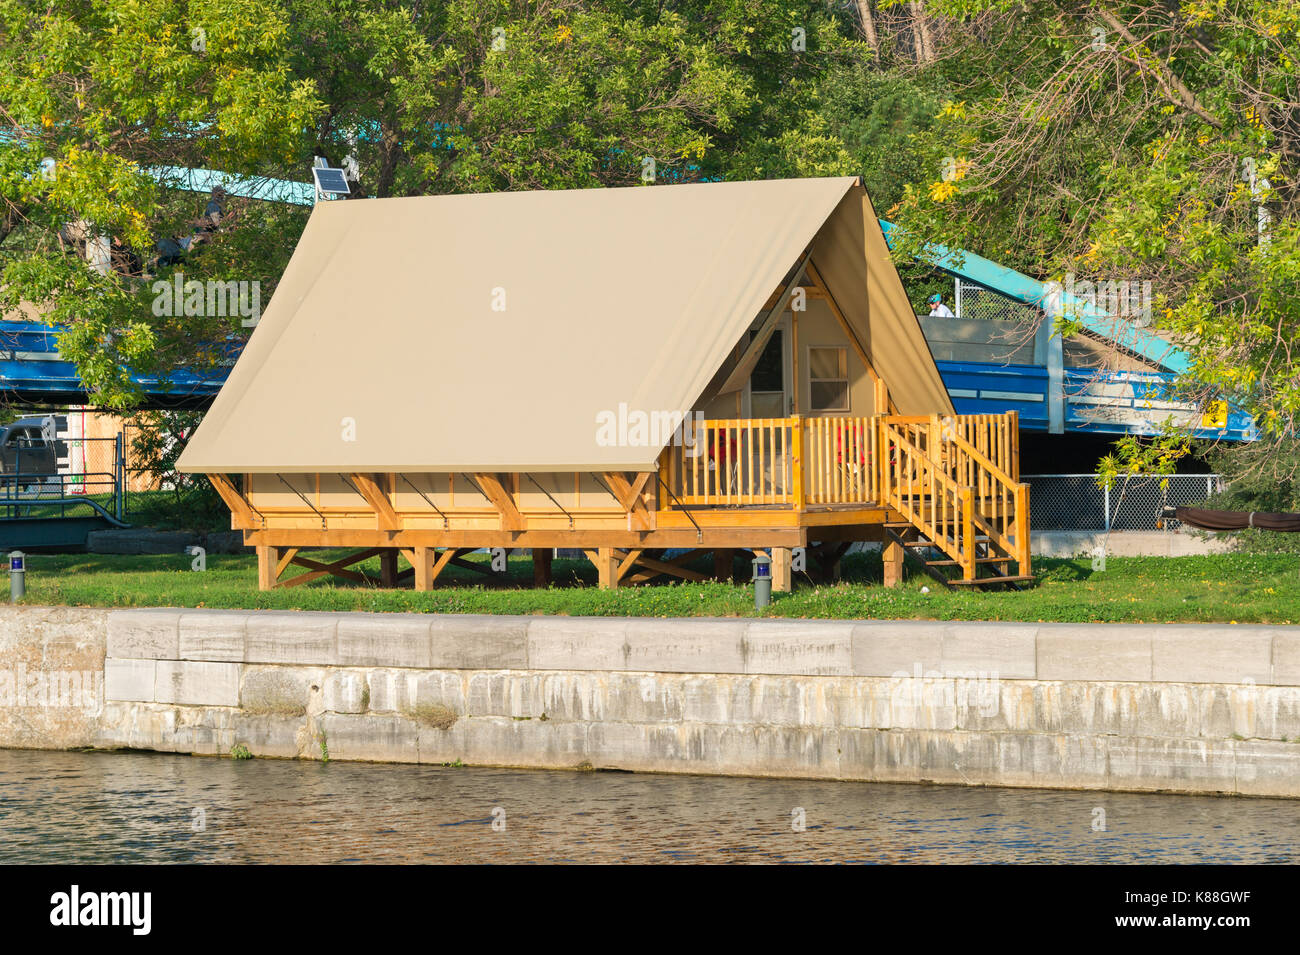 Montreal, CA - 17 September 2017: The Village by the locks in the Old Port of Montreal is a new lodging experience combining urban camping and boating - Stock Image